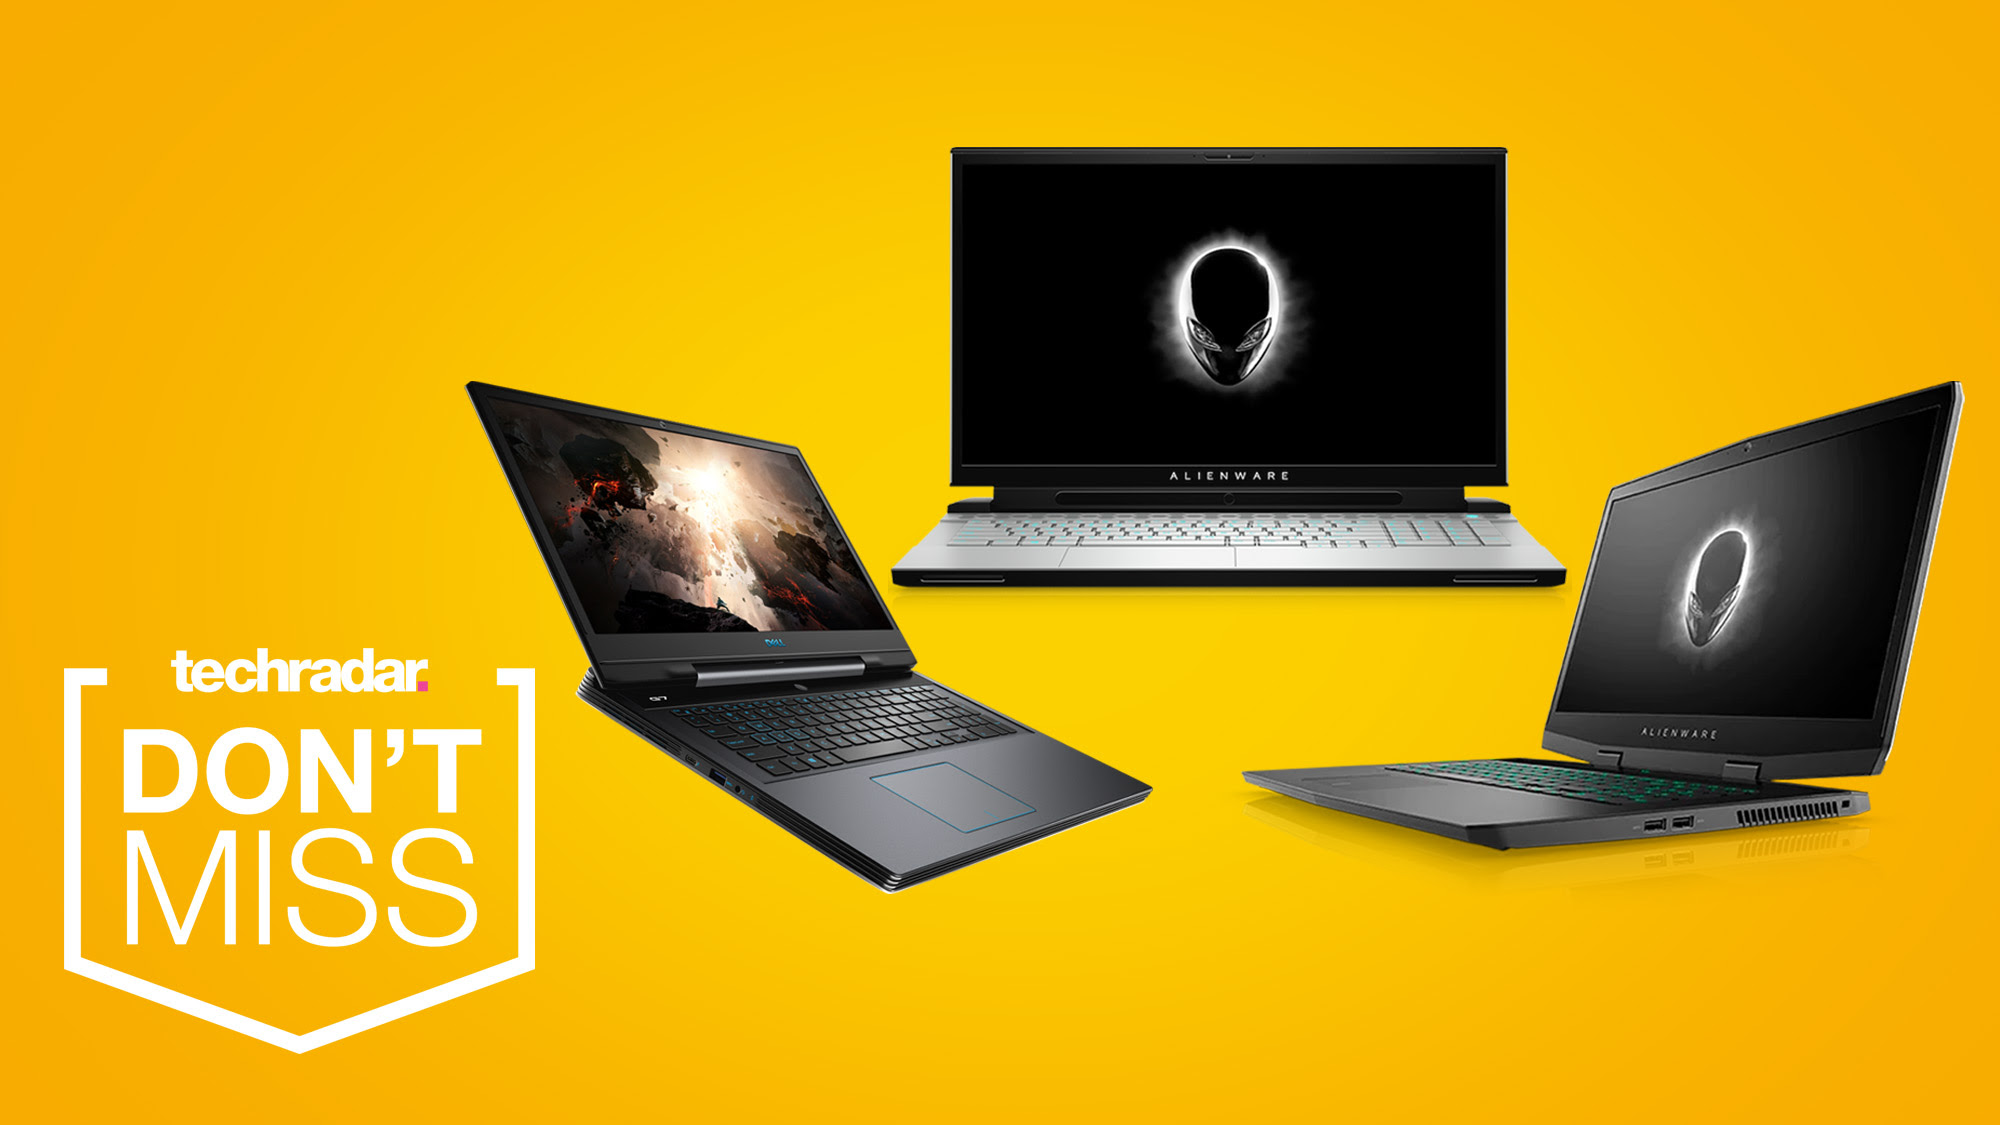 Save up to $750 on Alienware and G7 Dell gaming laptops this Cyber Monday